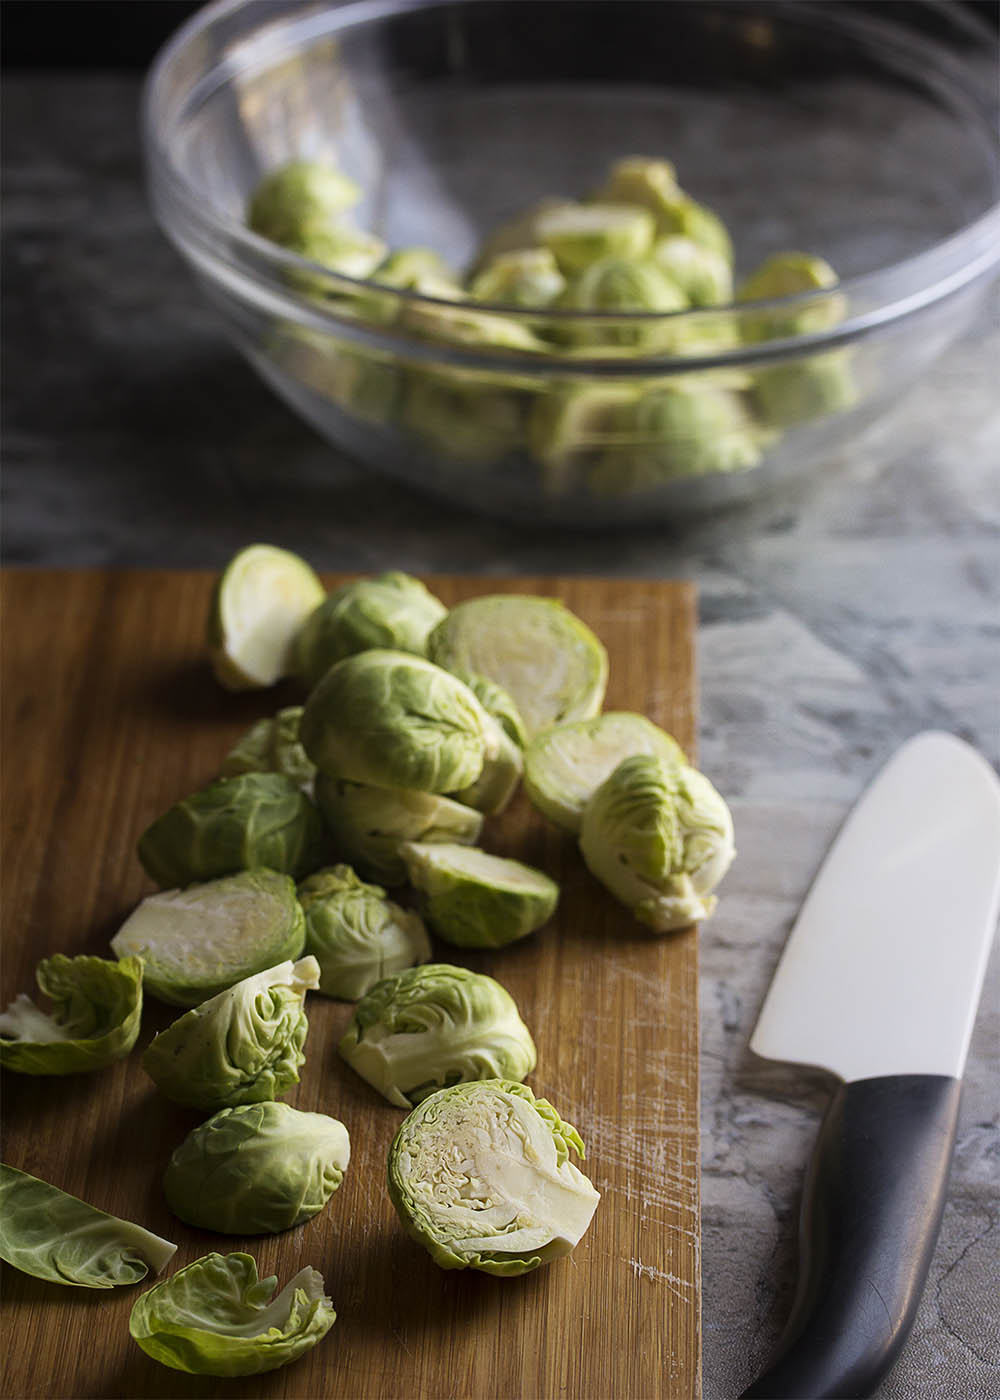 Sliced and trimmed Brussels sprouts on a cutting board ready to be fried.